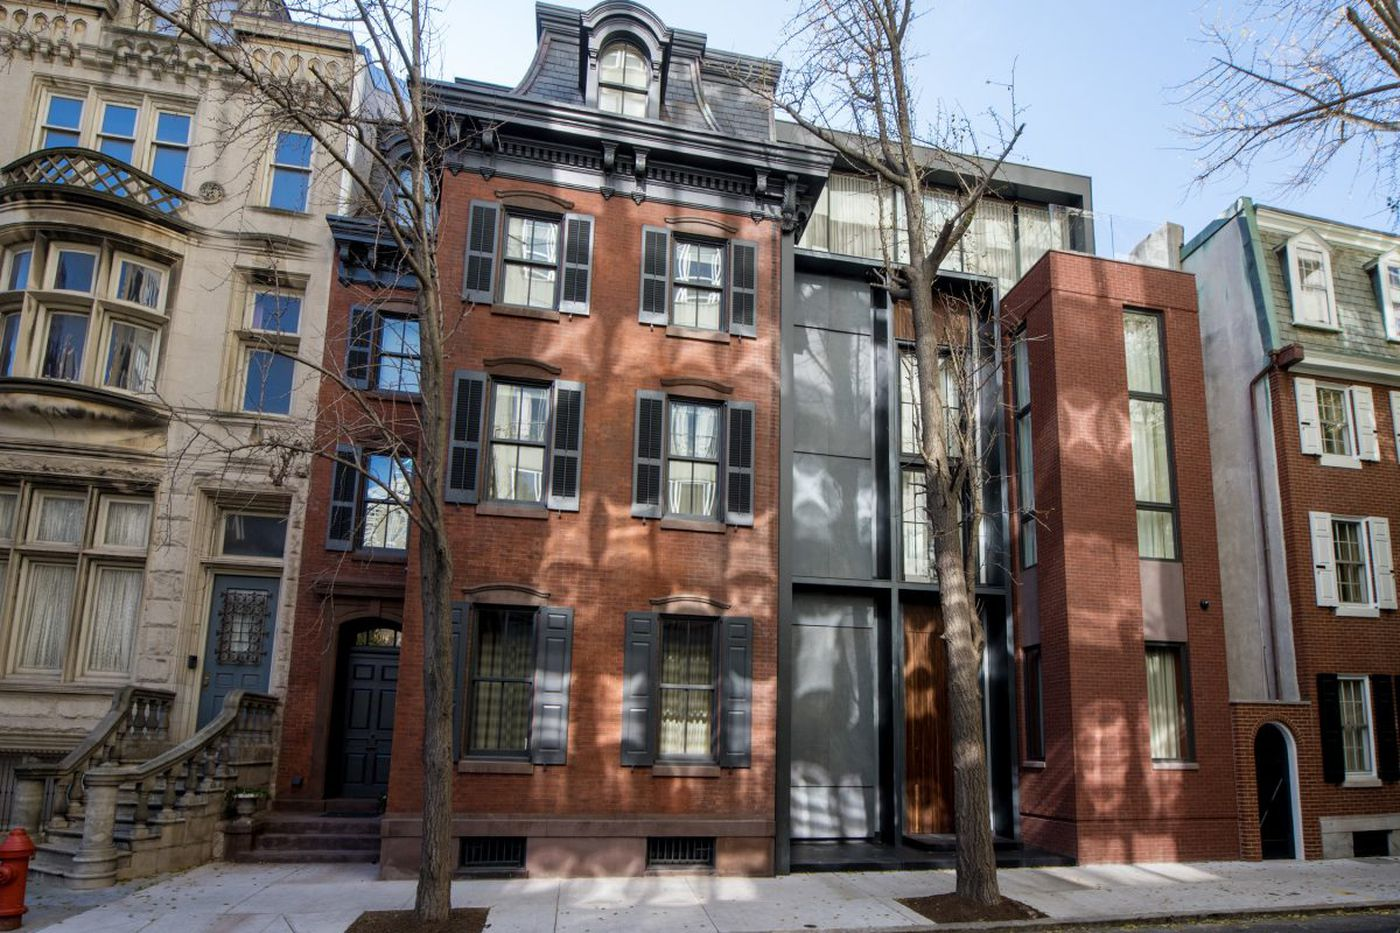 Bart Blatstein's mansion brings the Gilded Age back to Rittenhouse Square